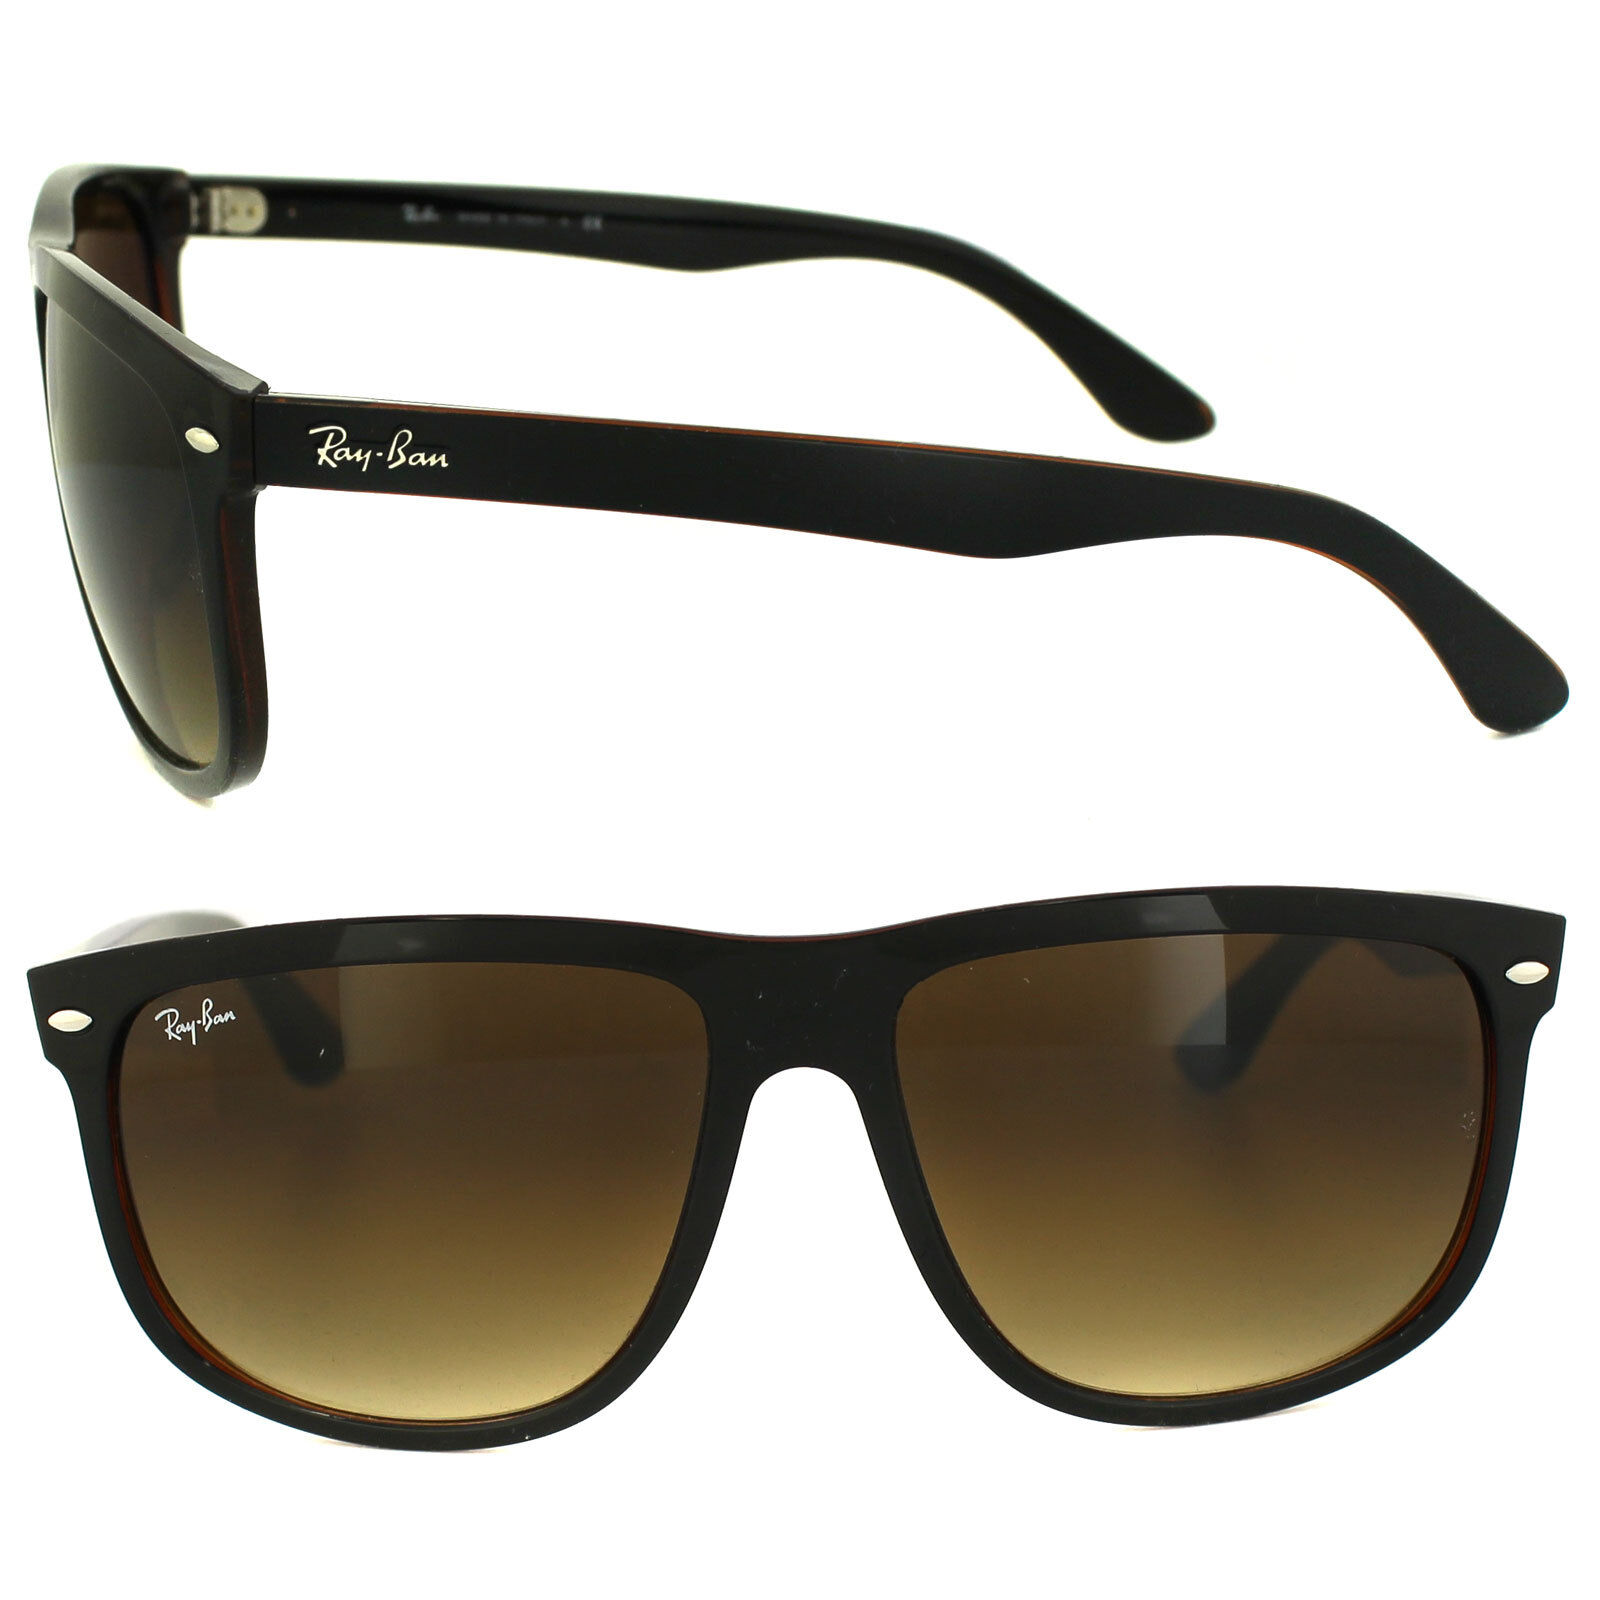 3df368d8a3754 Sunglasses Ray-Ban - Rb4147 609585 60 RAYBAN for sale online